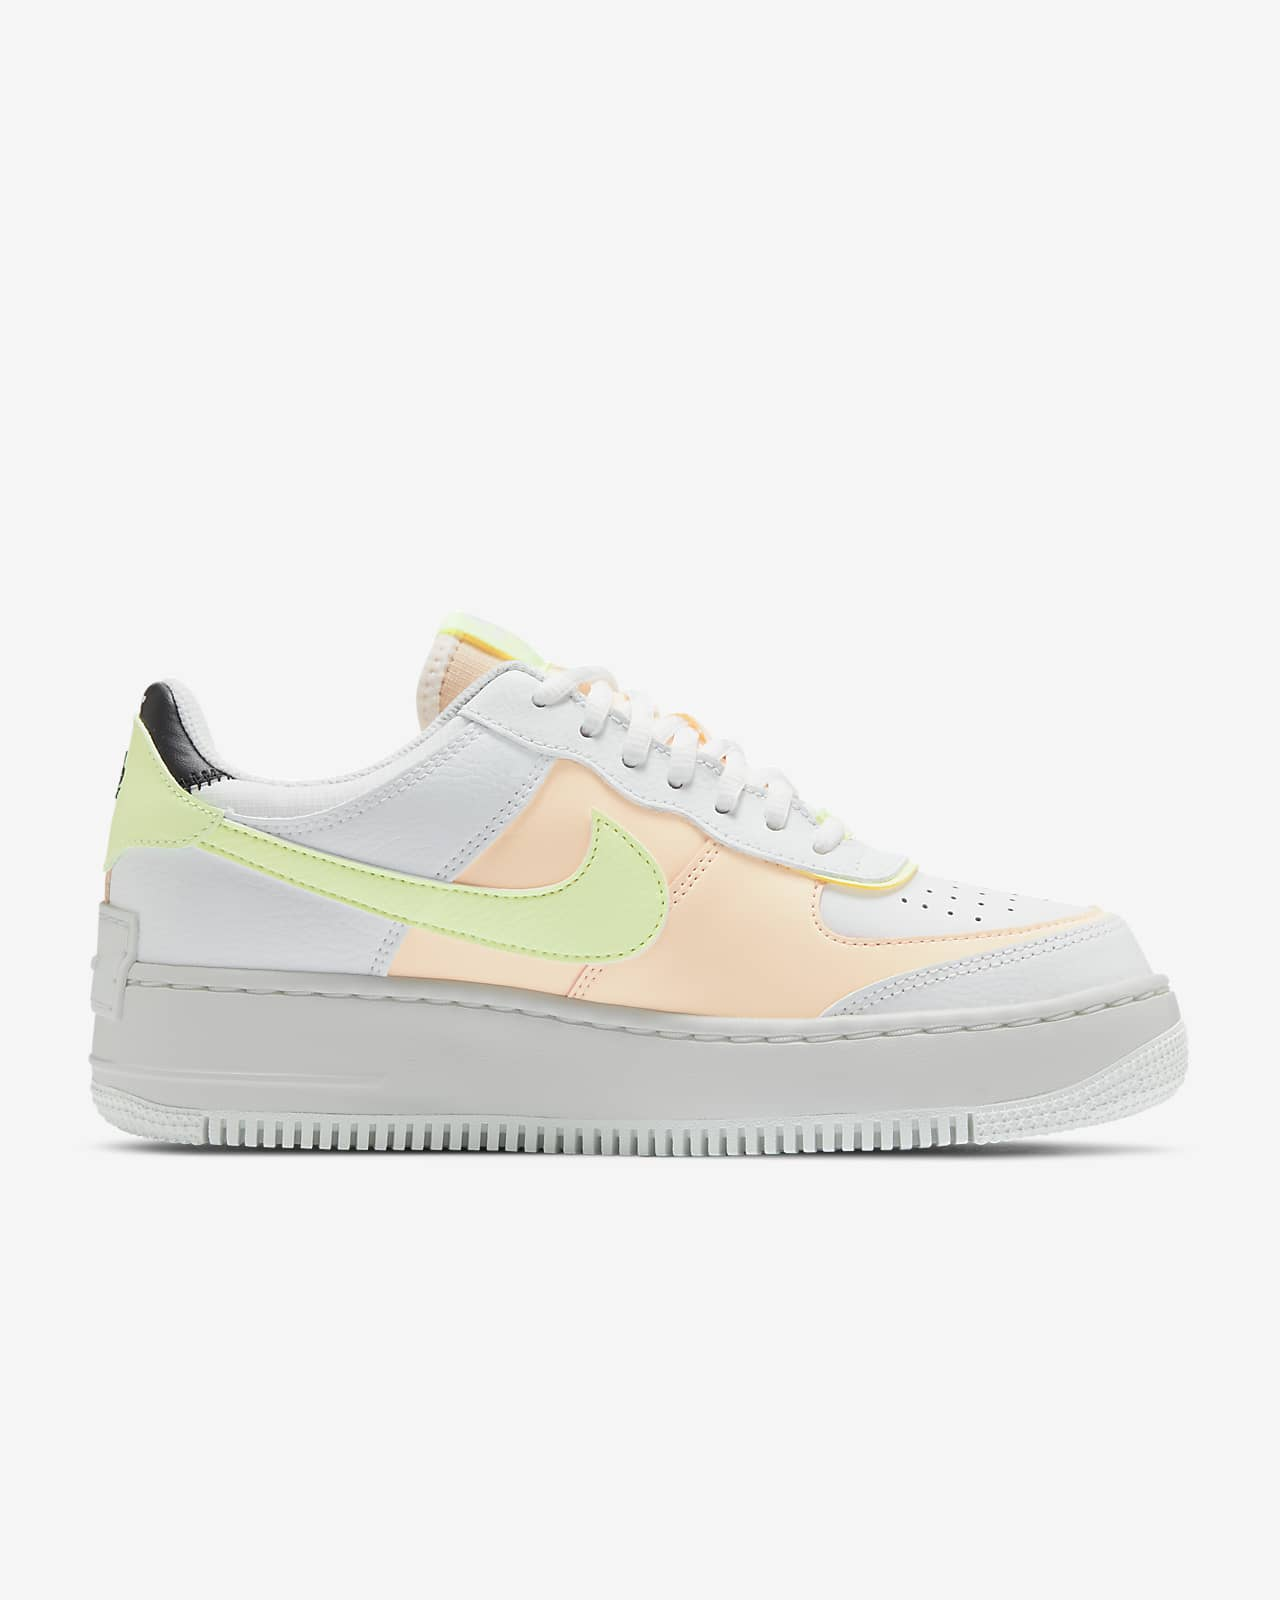 Calzado Para Mujer Nike Air Force 1 Shadow Nike Mx In this video i review a brand new model from nike, the nike air force 1 shadow. calzado para mujer nike air force 1 shadow